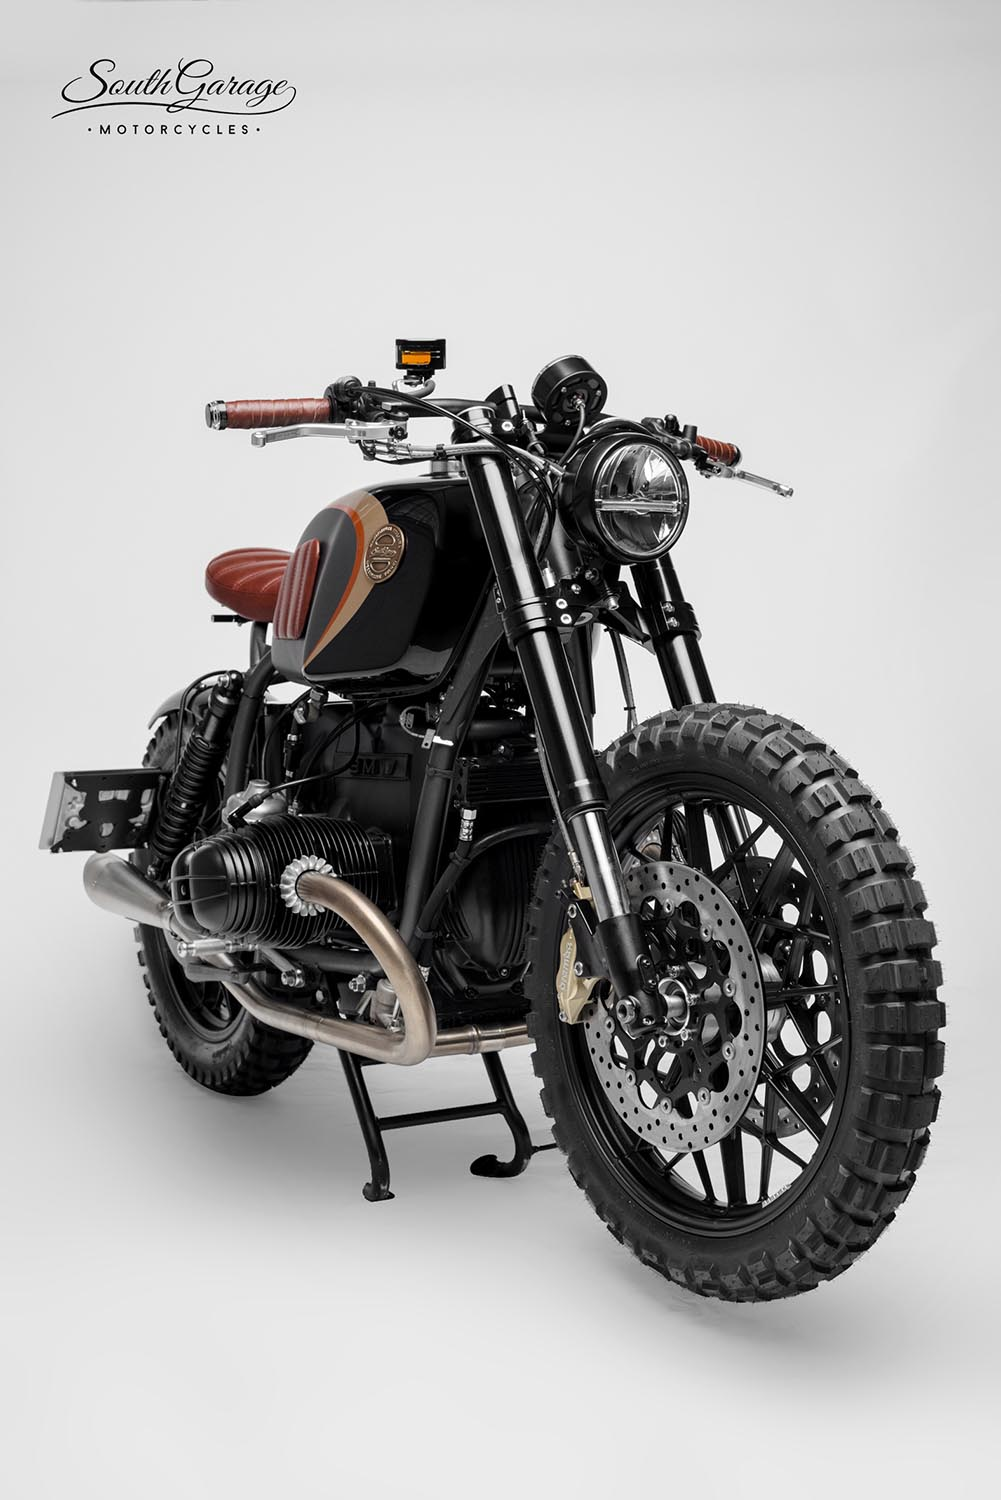 ϟ Hell Kustom ϟ Bmw R100r By South Garage Motorcycles